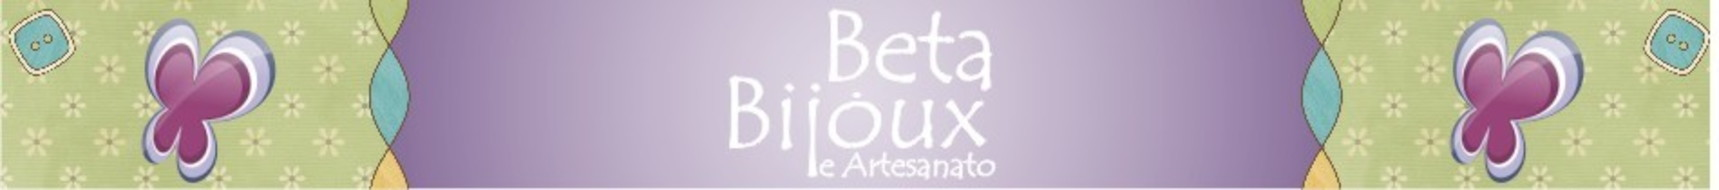 Betabijoux e Artesanato